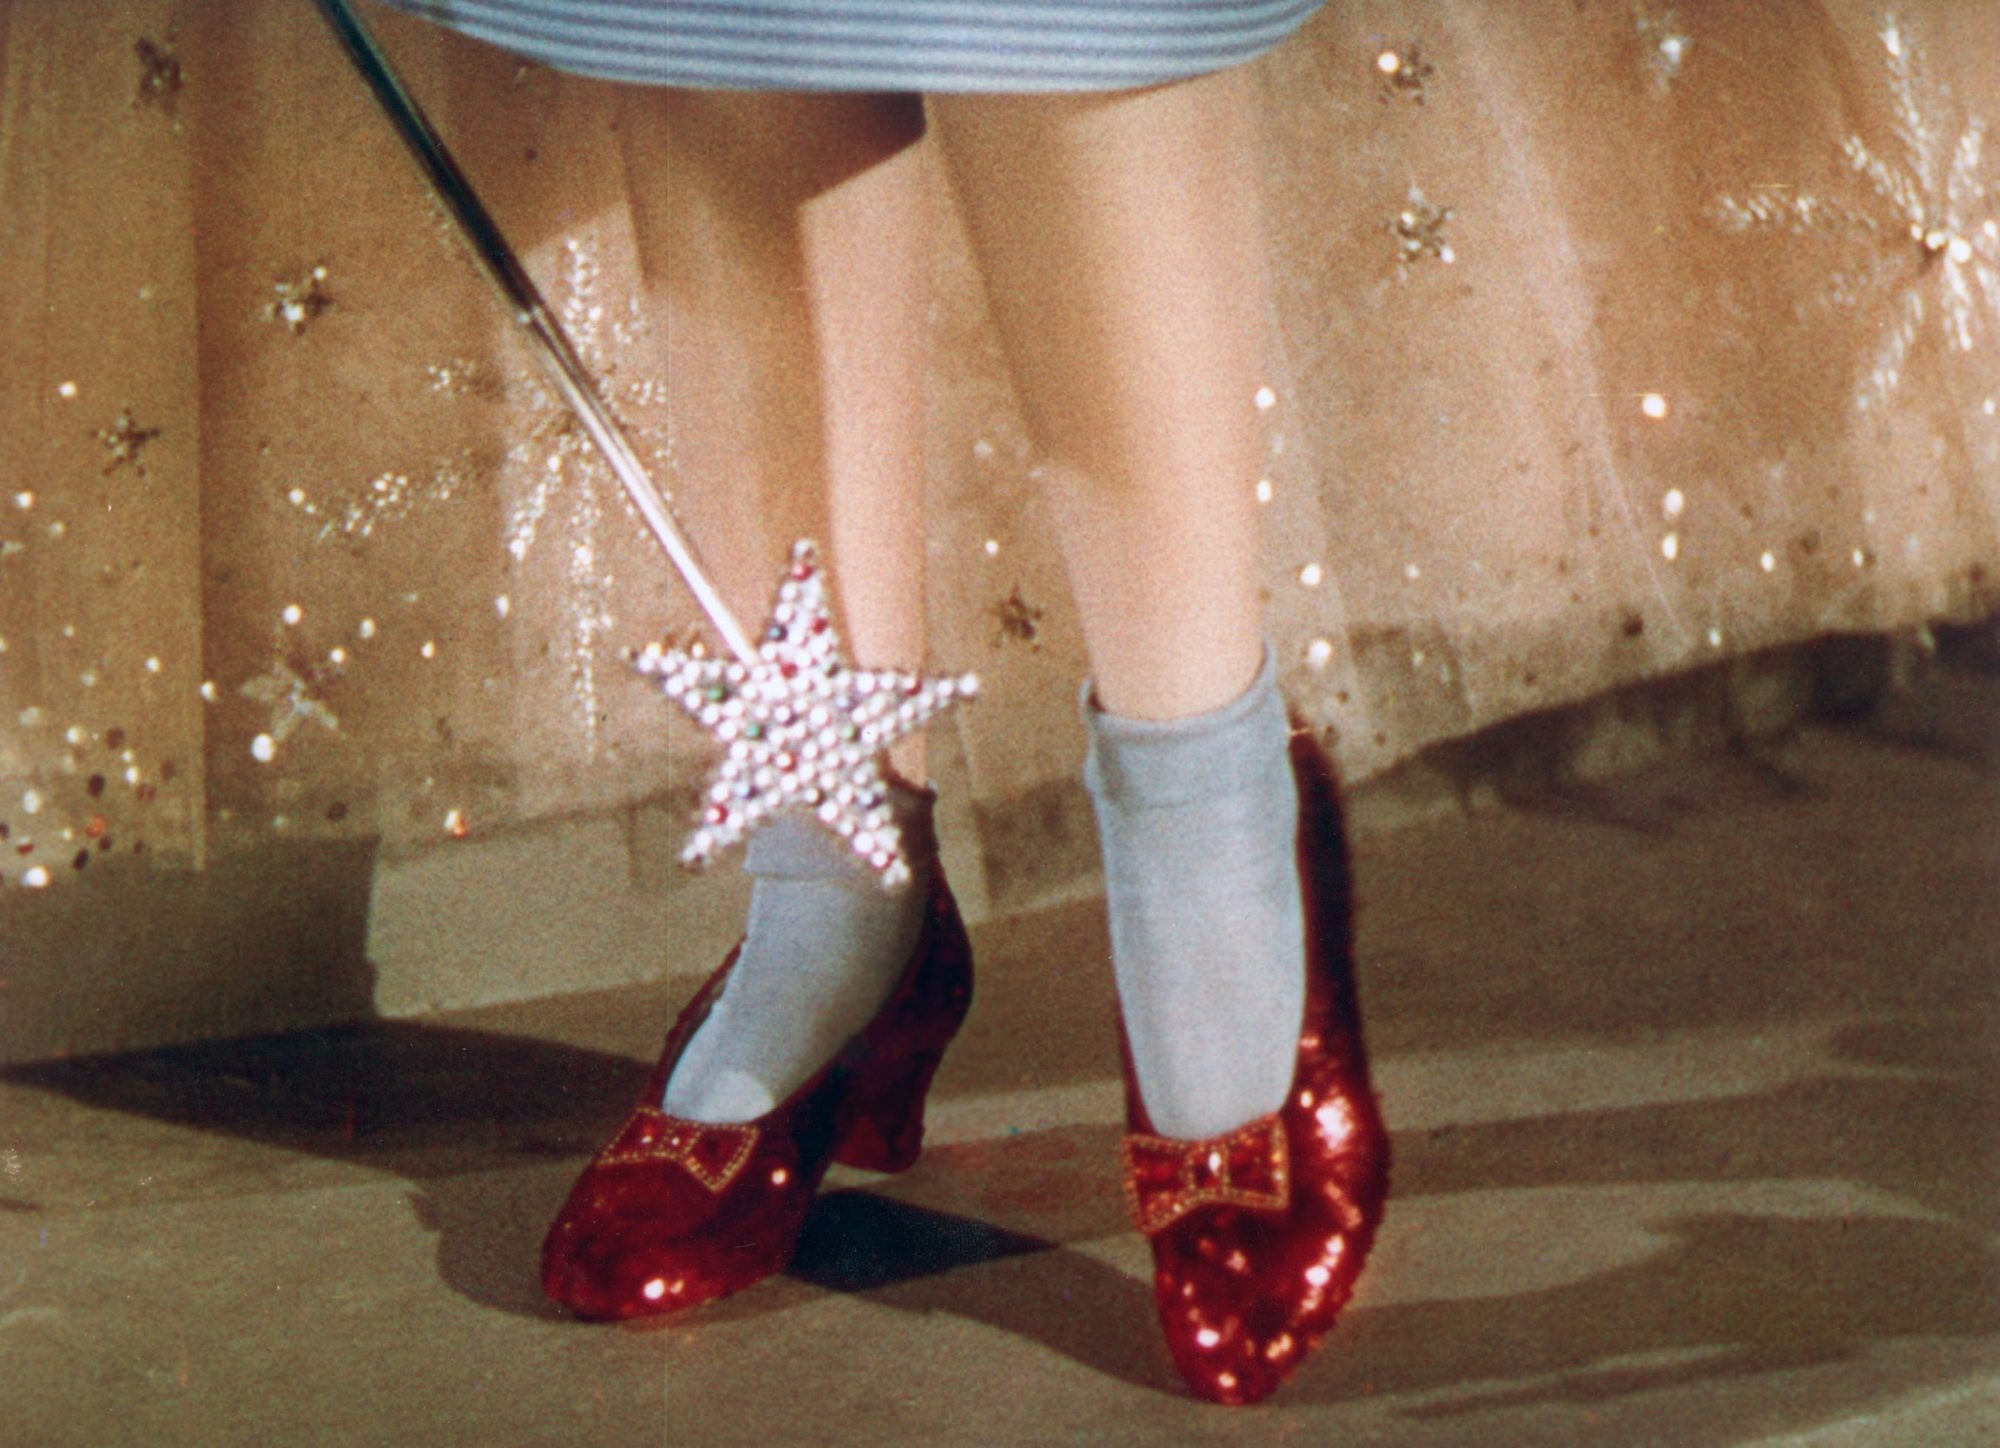 THE WIZARD OF OZ, Dorothy's ruby slippers, 1939